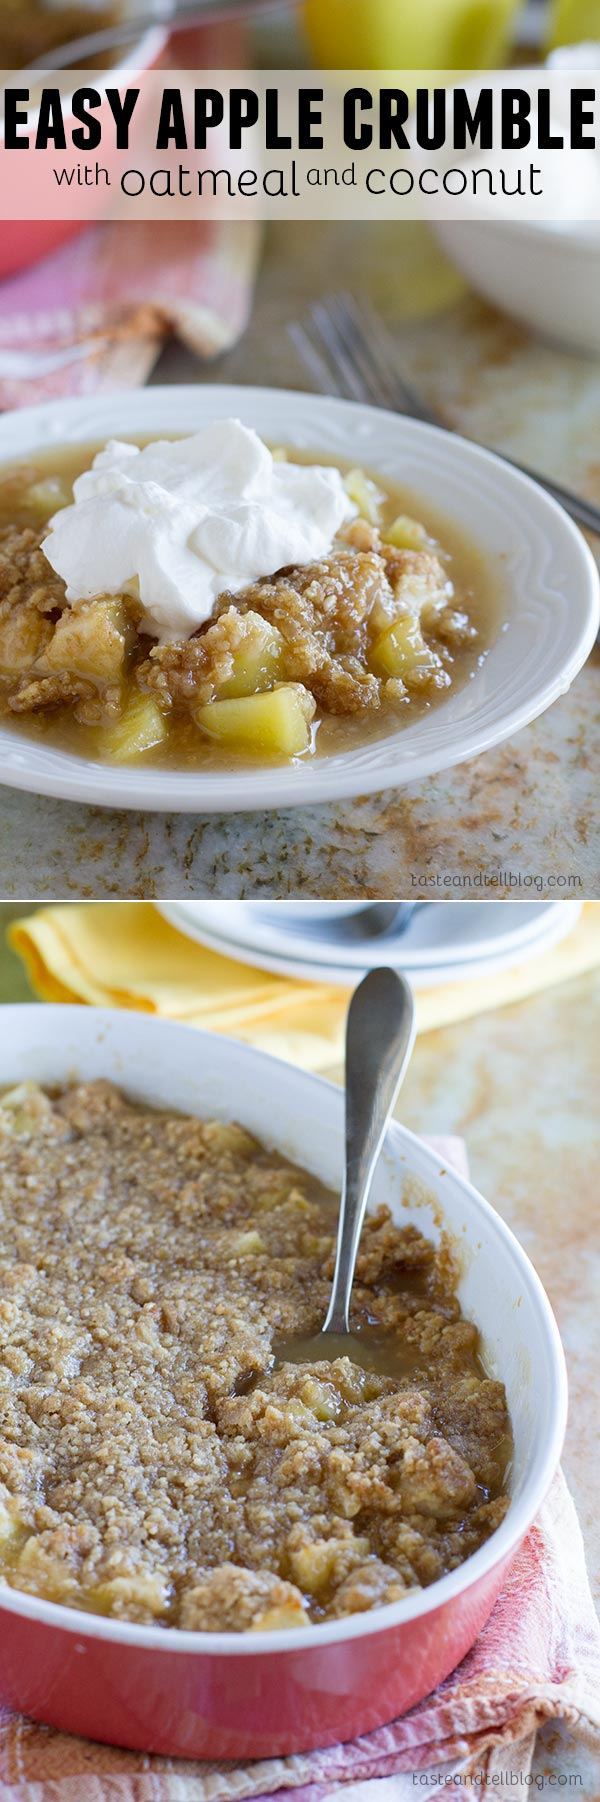 Easy Apple Crumble with Oatmeal and Coconut - Baked apples are topped with a mixture of steel cut oats and coconut in this easy apple crumble.  Top it off with homemade whipped cream for an easy dessert that everyone will love.